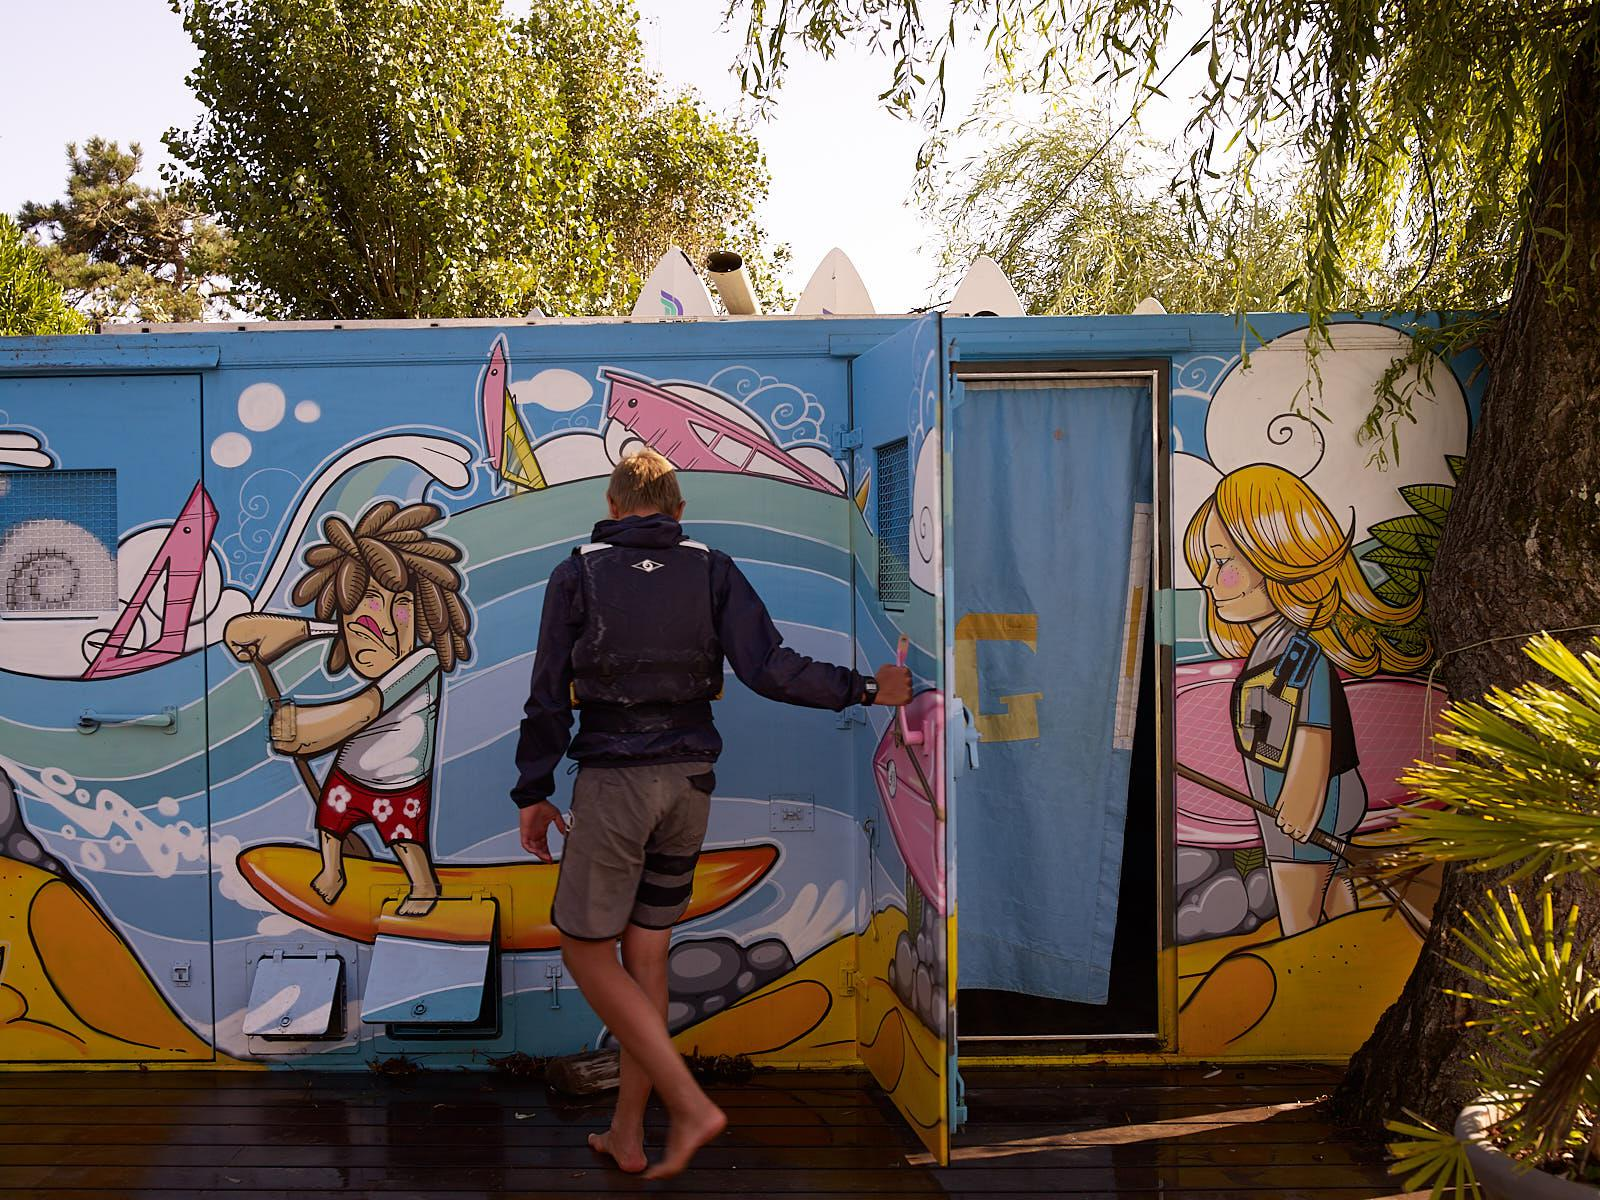 Club Nautique du Rohu - The new lockers rooms with a creative decoration